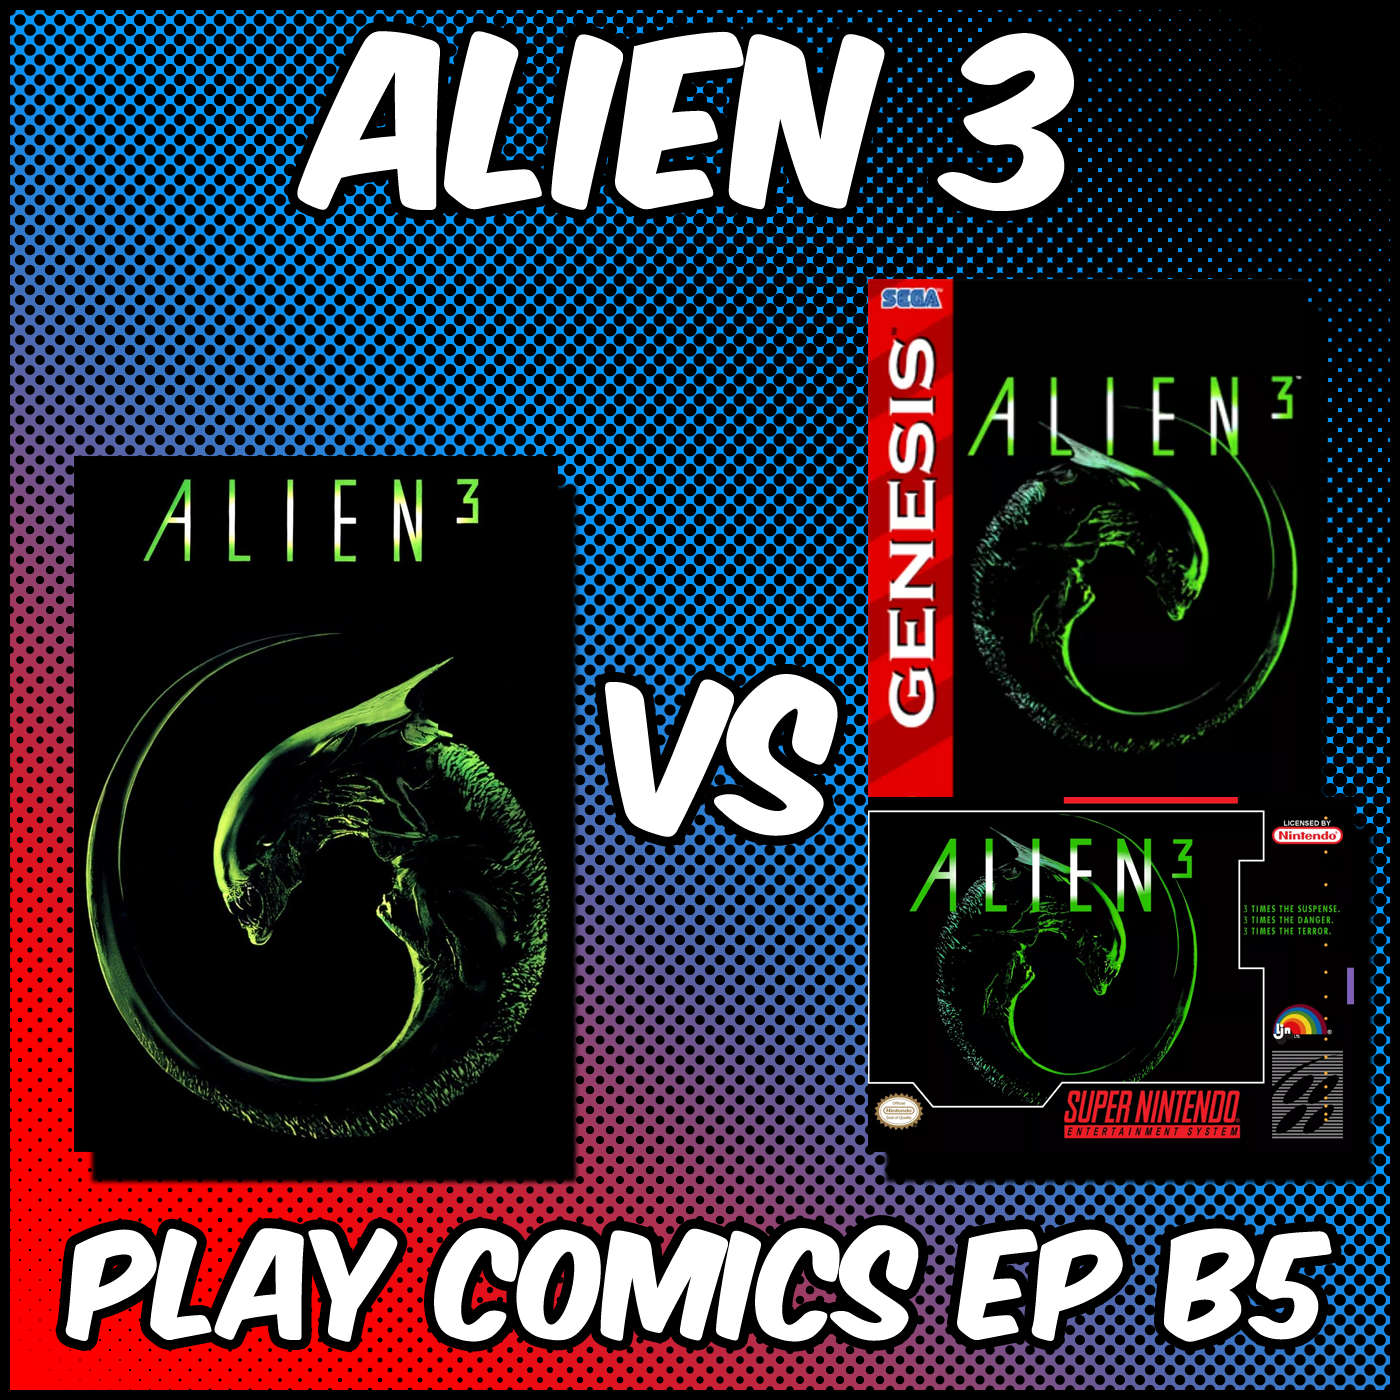 Alien 3 (April Fools) with Keith Gawla (Pop Up Film Cast)